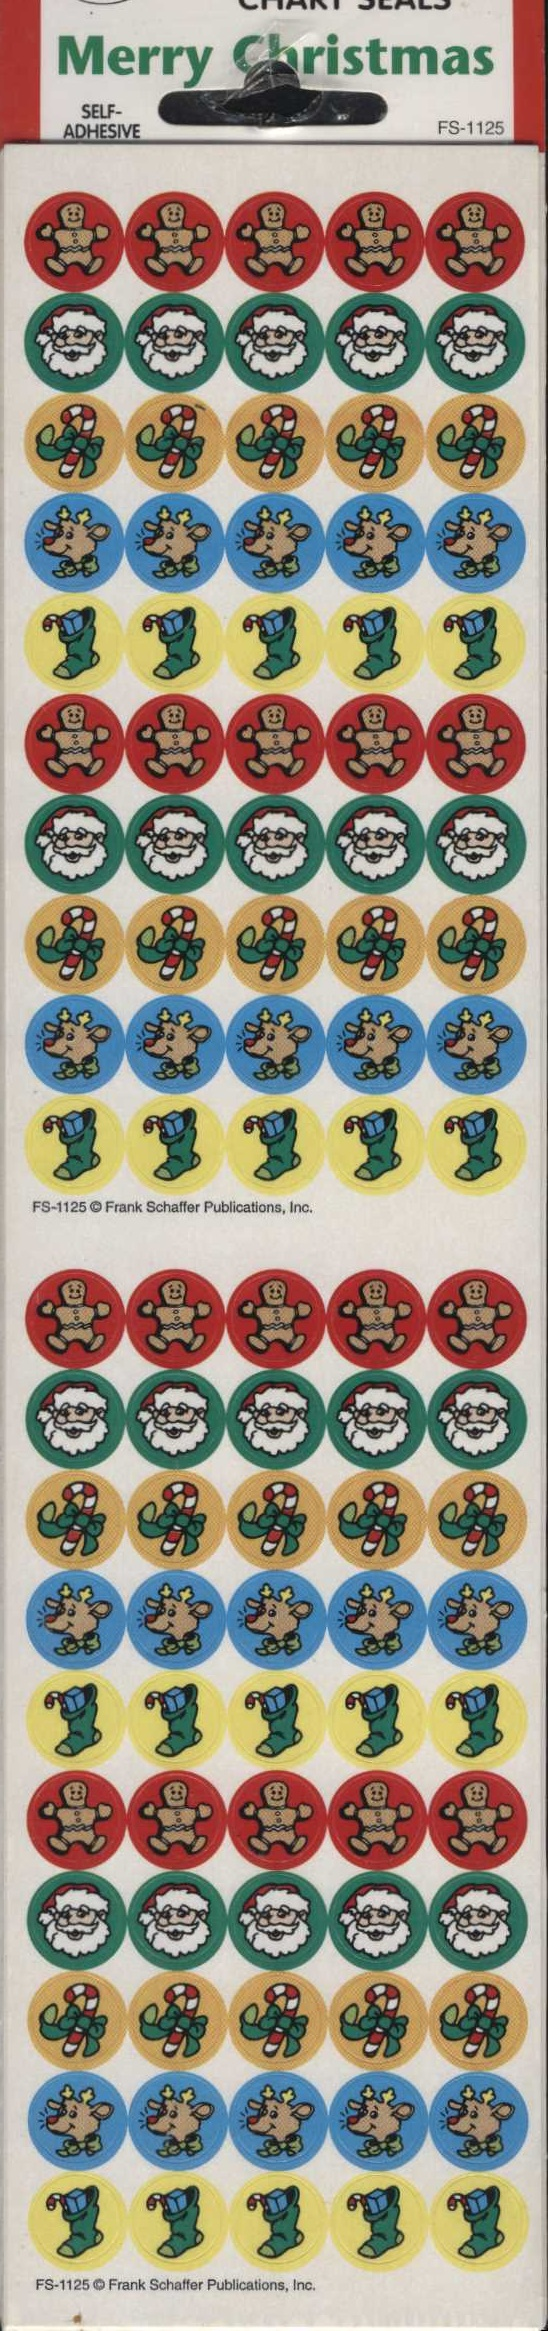 Merry Christmas Stickers 500